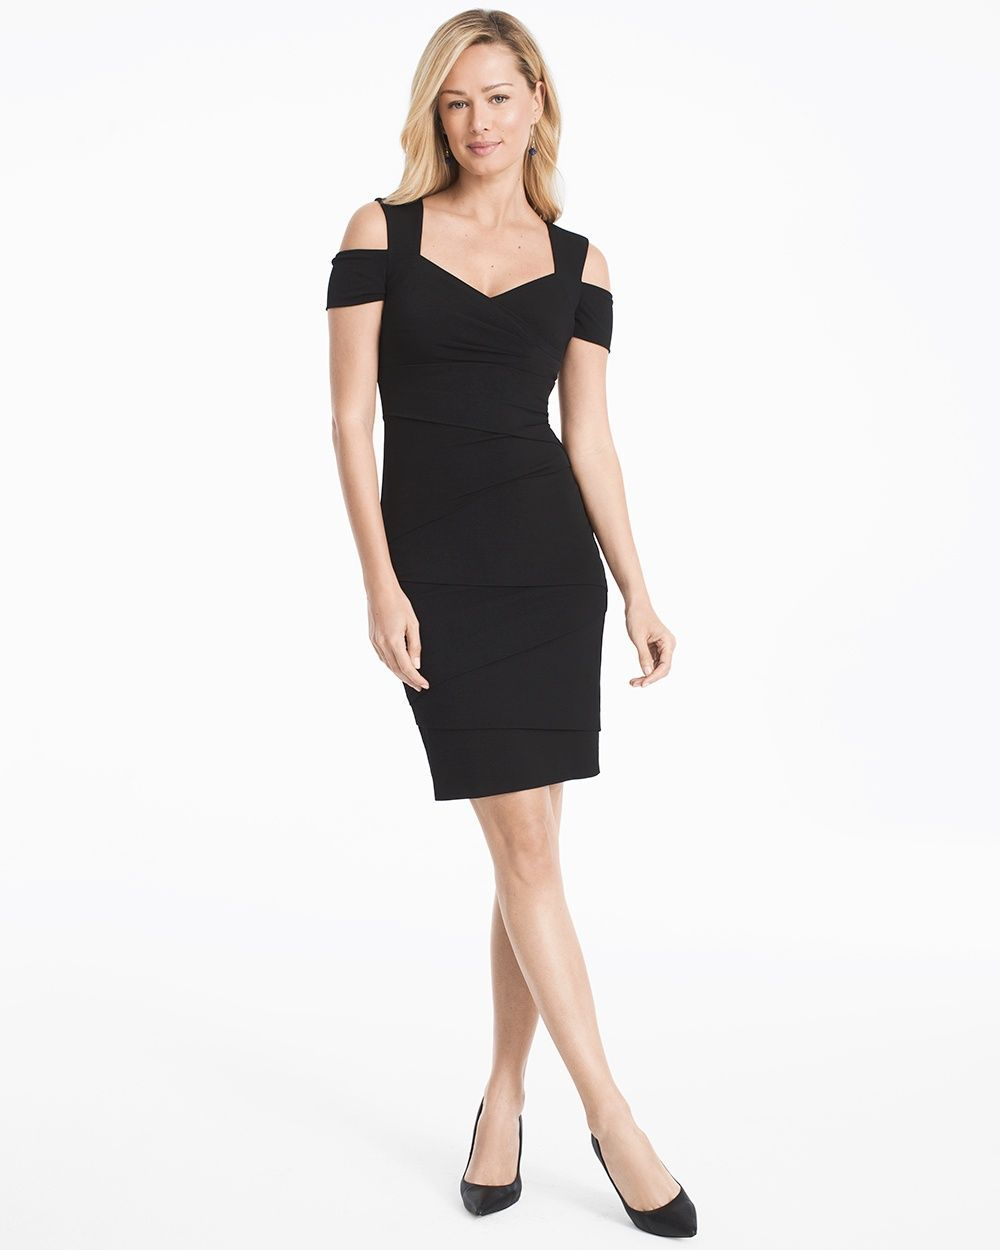 6d03434d6a4 Women s Cold-Shoulder Black Instantly Slimming Dress by White House Black  Market